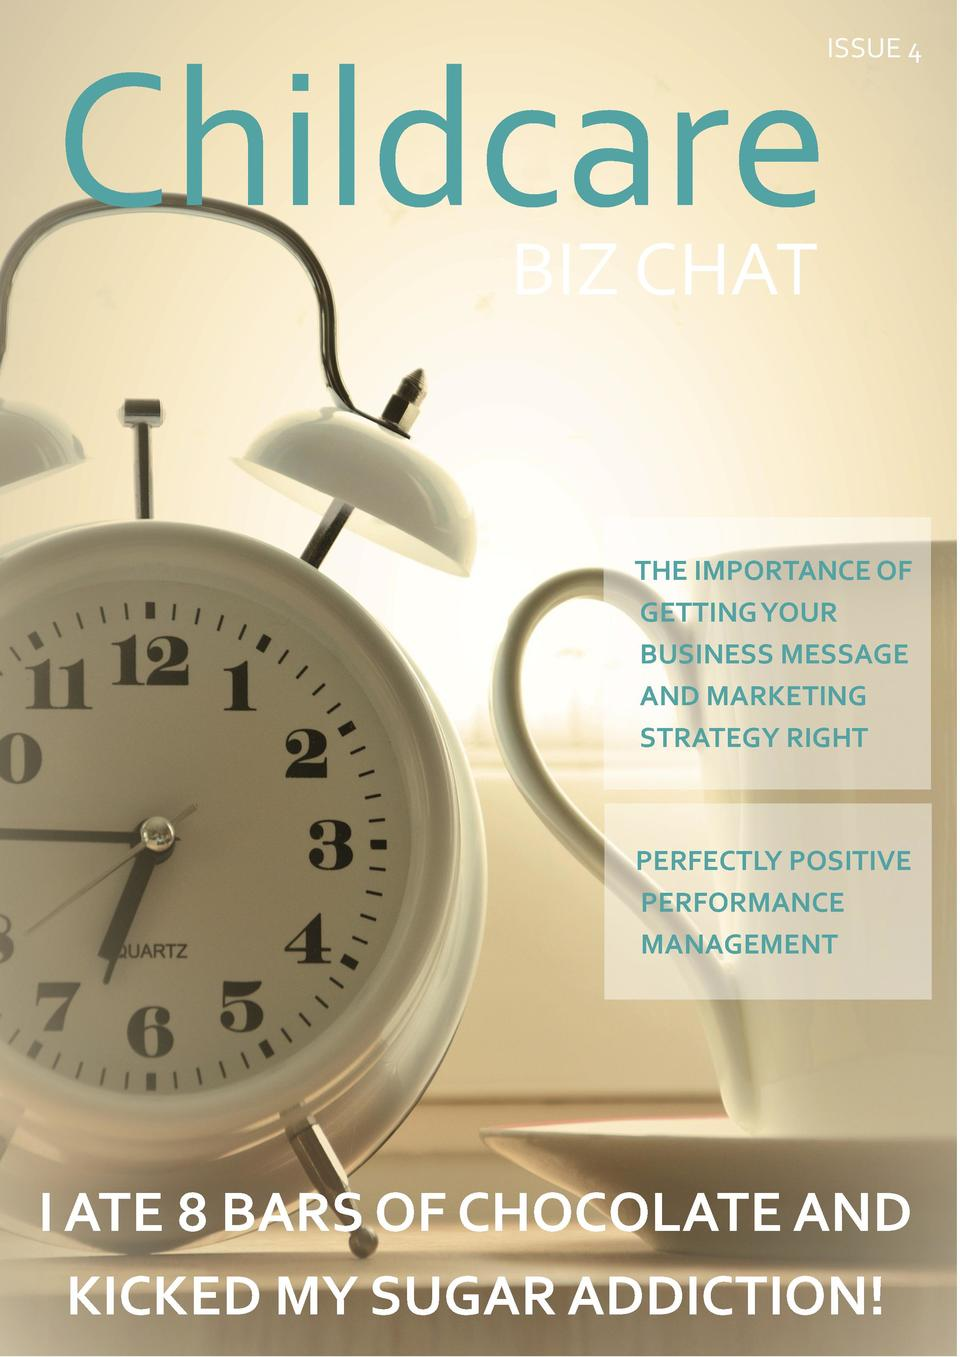 ISSUE 4  Childcare BIZ CHAT  THE IMPORTANCE OF GETTING YOUR BUSINESS MESSAGE AND MARKETING STRATEGY RIGHT  PERFECTLY POSIT...